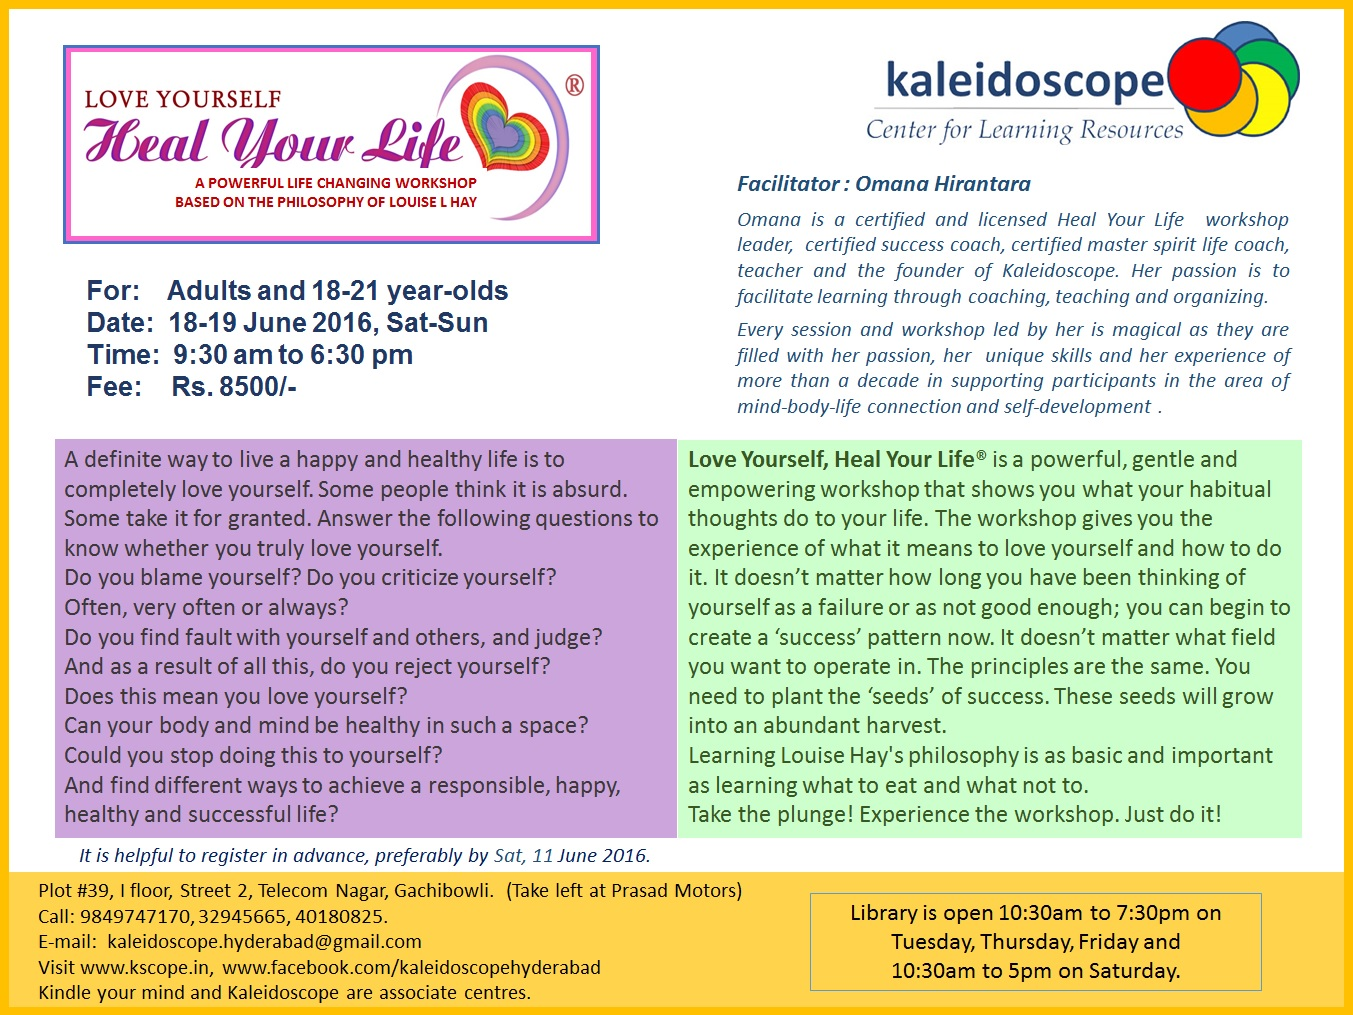 LoveYourself-HealYourLife Workshop Brochure-1 18-19 June 2016